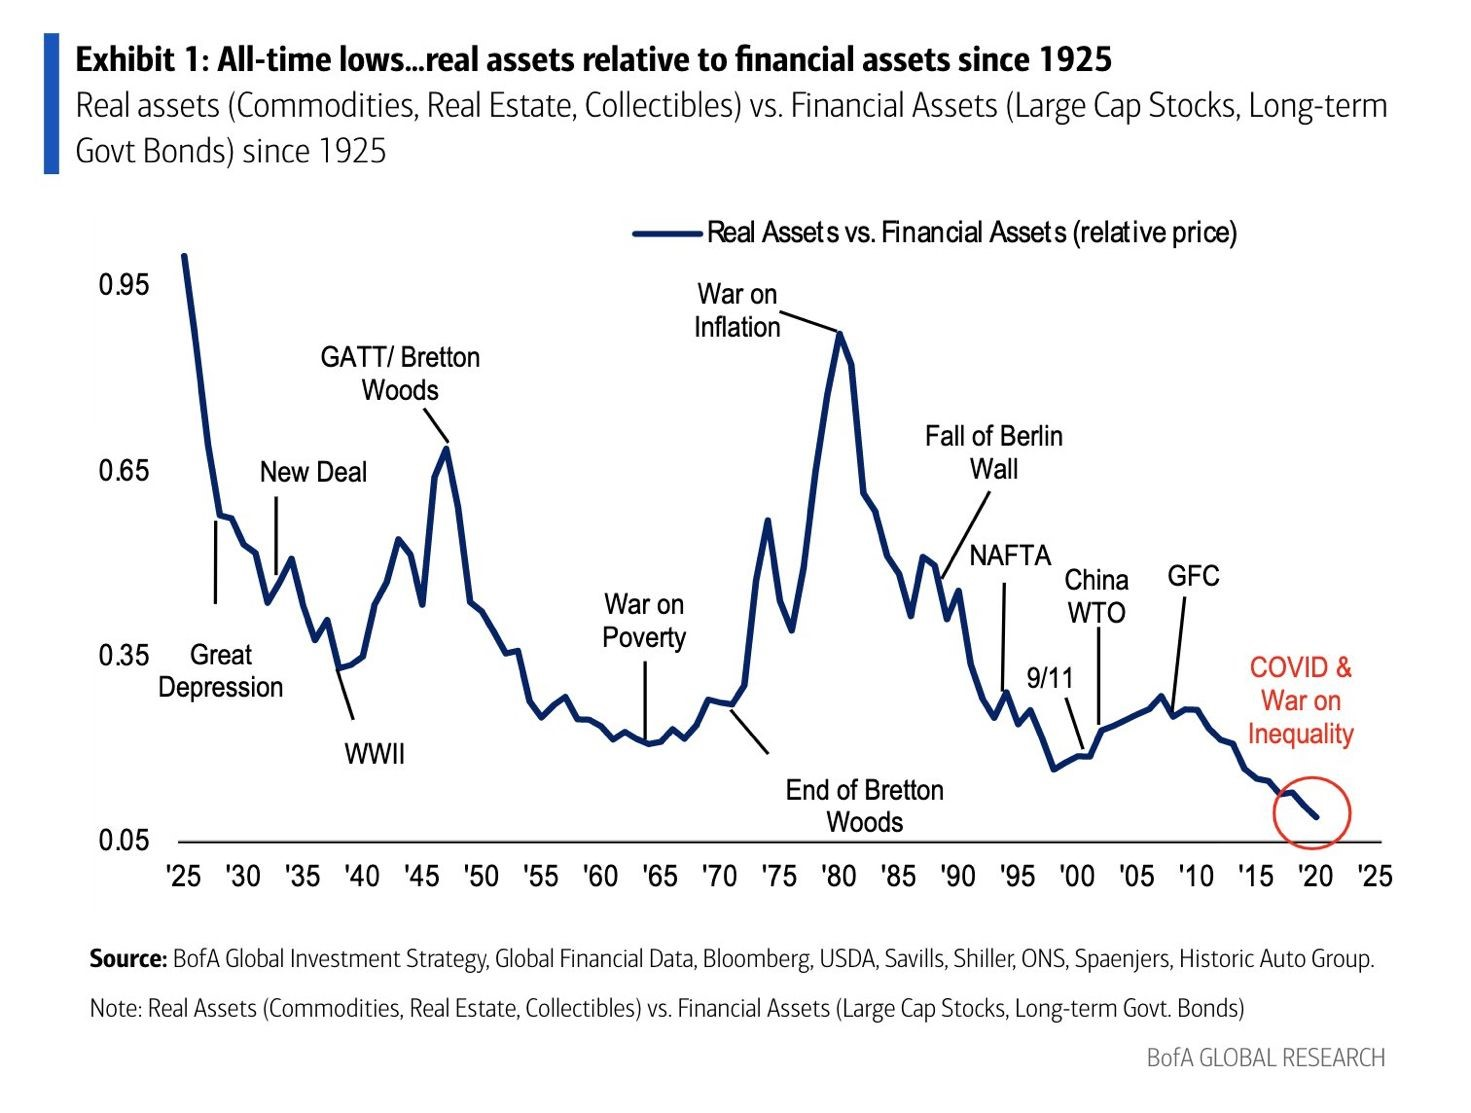 All-time lows real assets